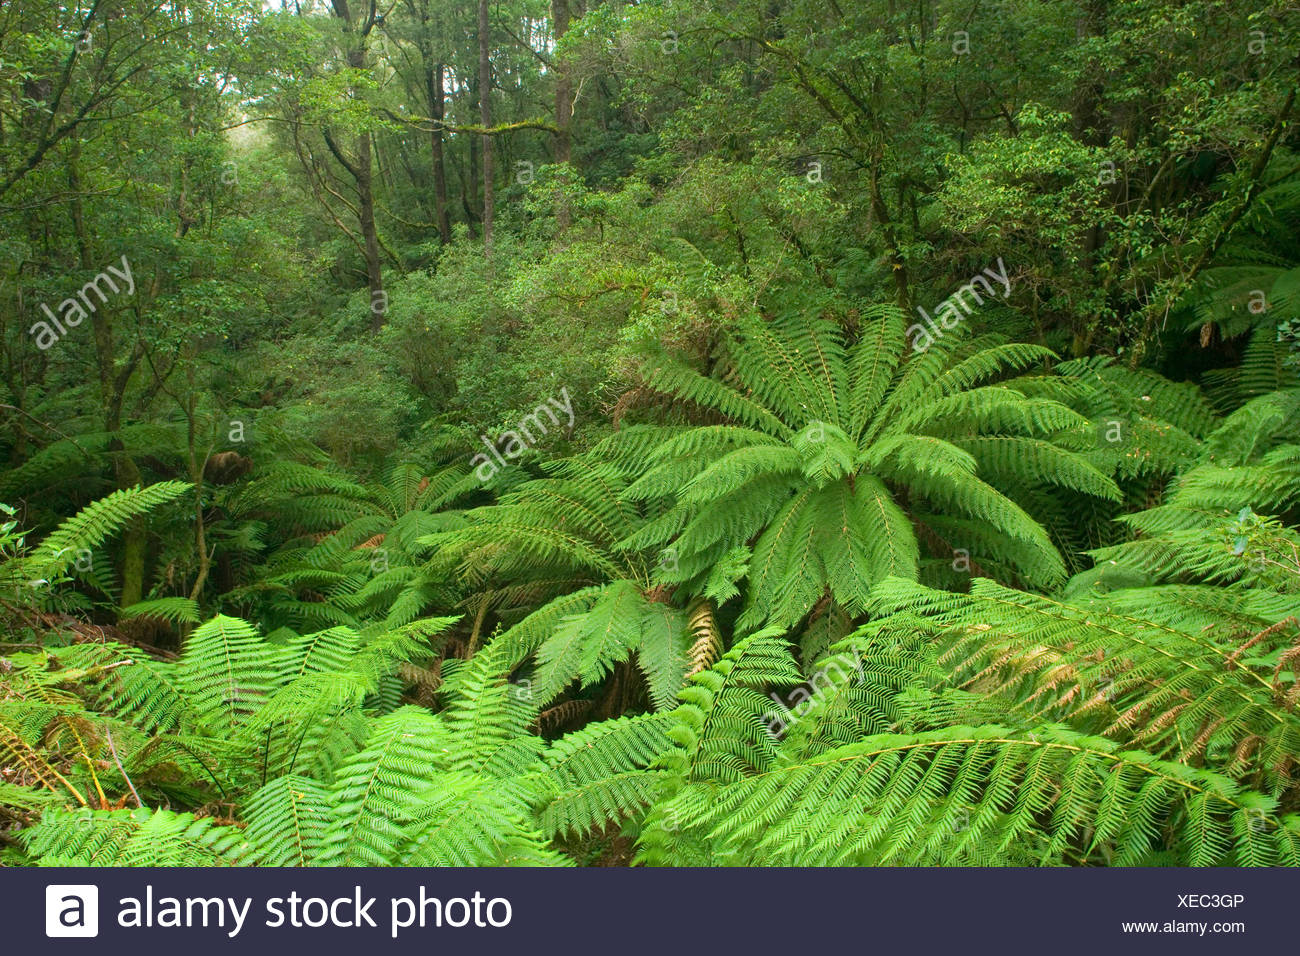 temperate rainforest - a gully with lots and lots of treefern in a lush temperate rainforest , Australia, Victoria, Great Ocean Road, Melba Gully State Park - Stock Image